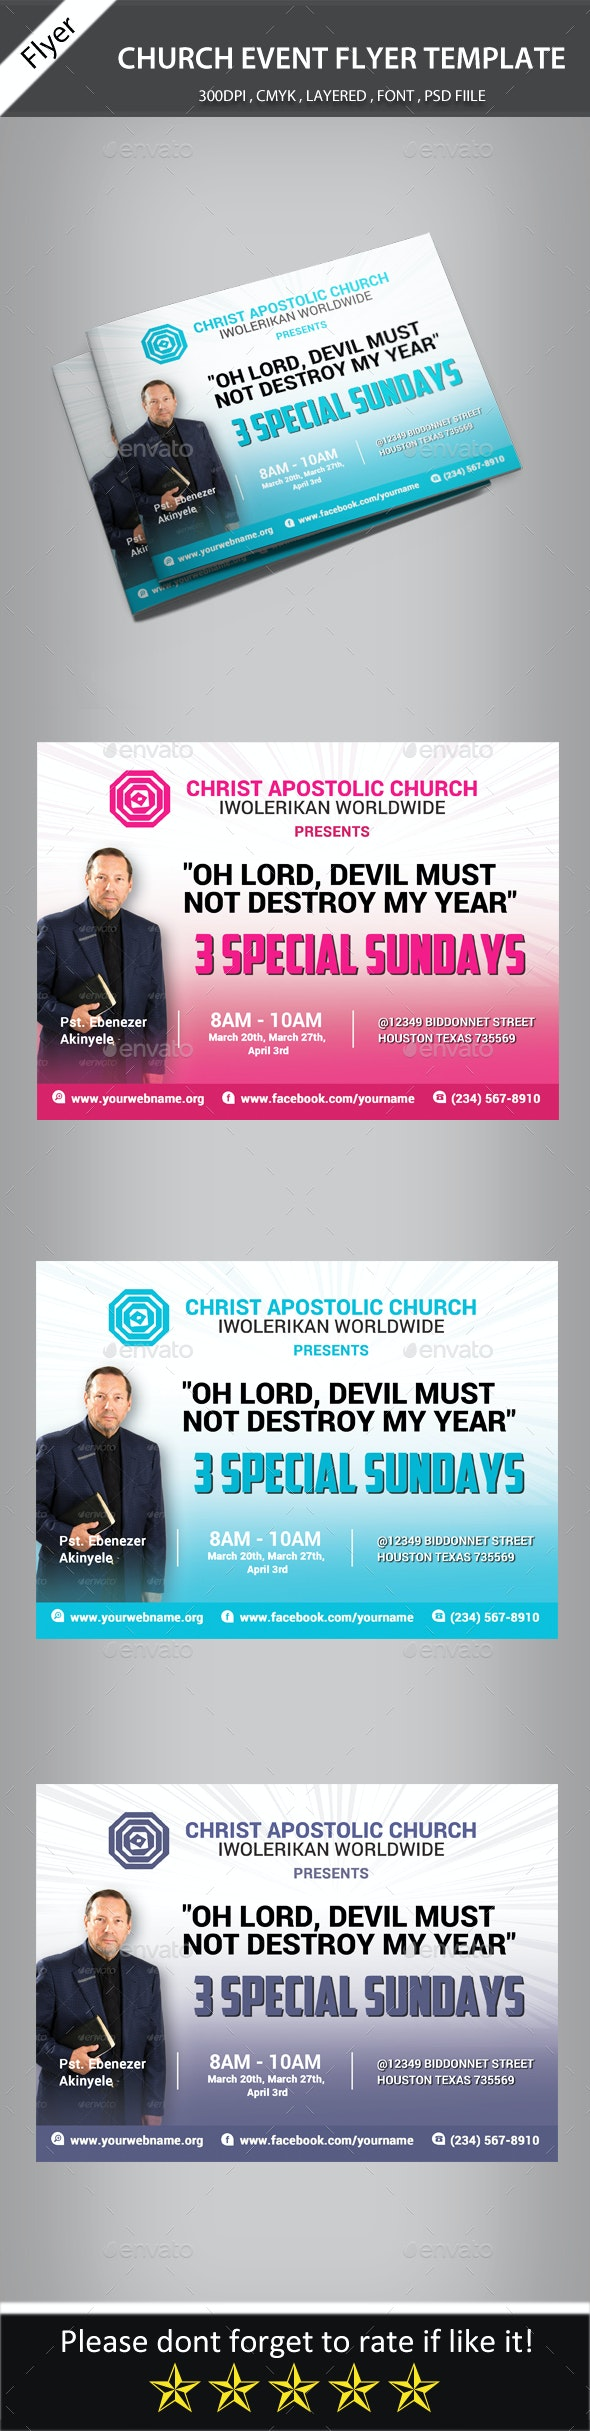 Church Event Flyer Template - Church Flyers